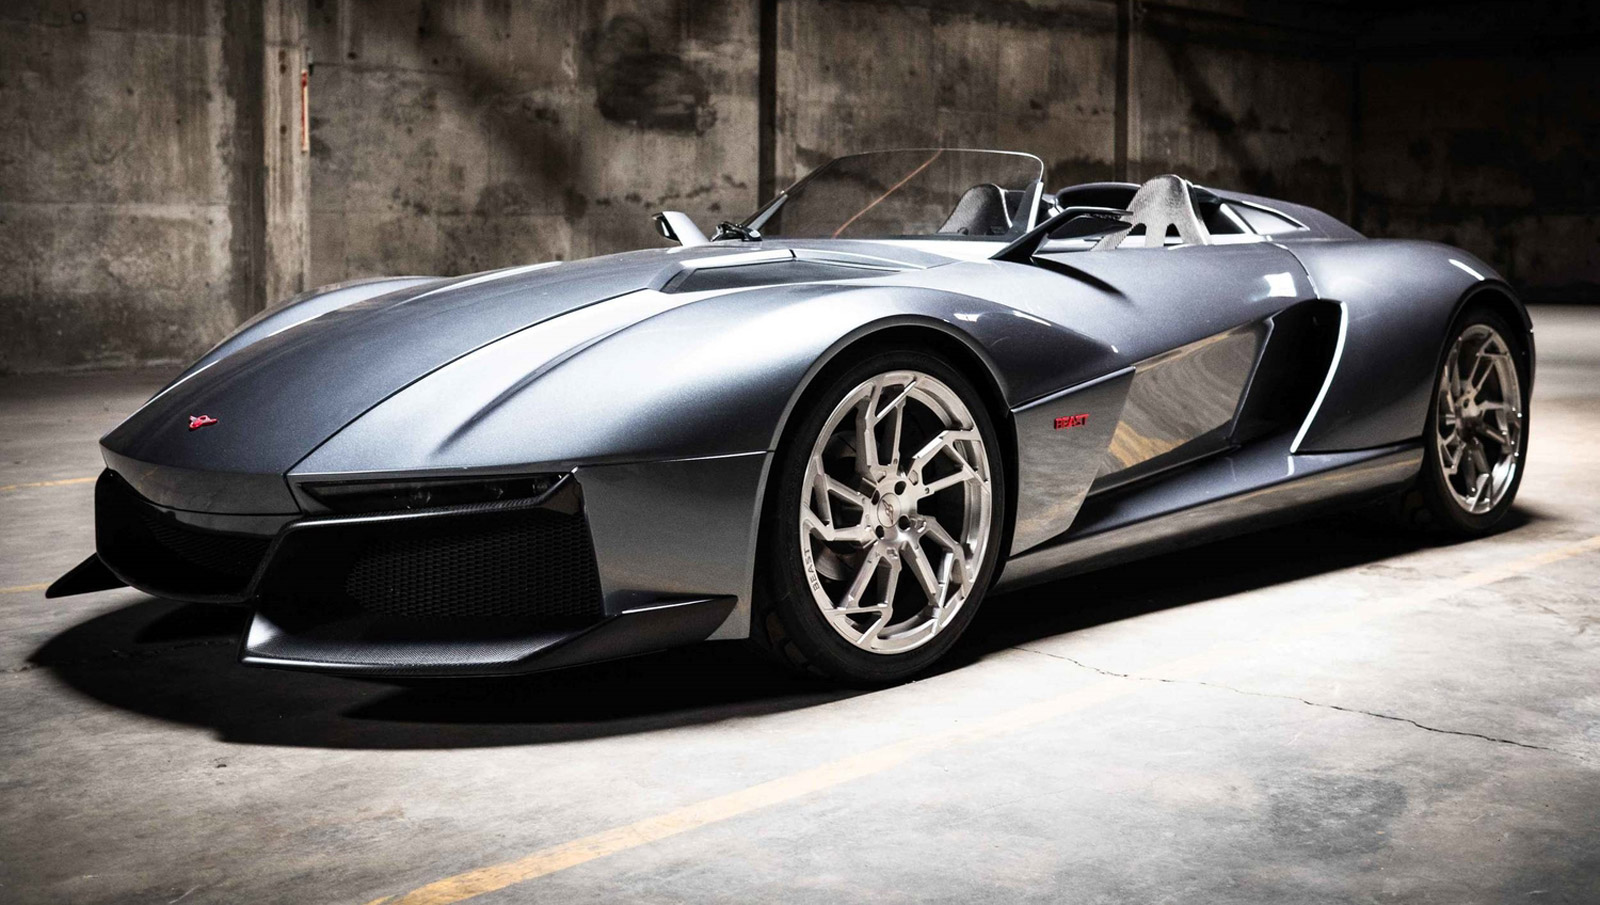 Chris Brown First To Take Delivery Of 500 Hp Rezvani Beast